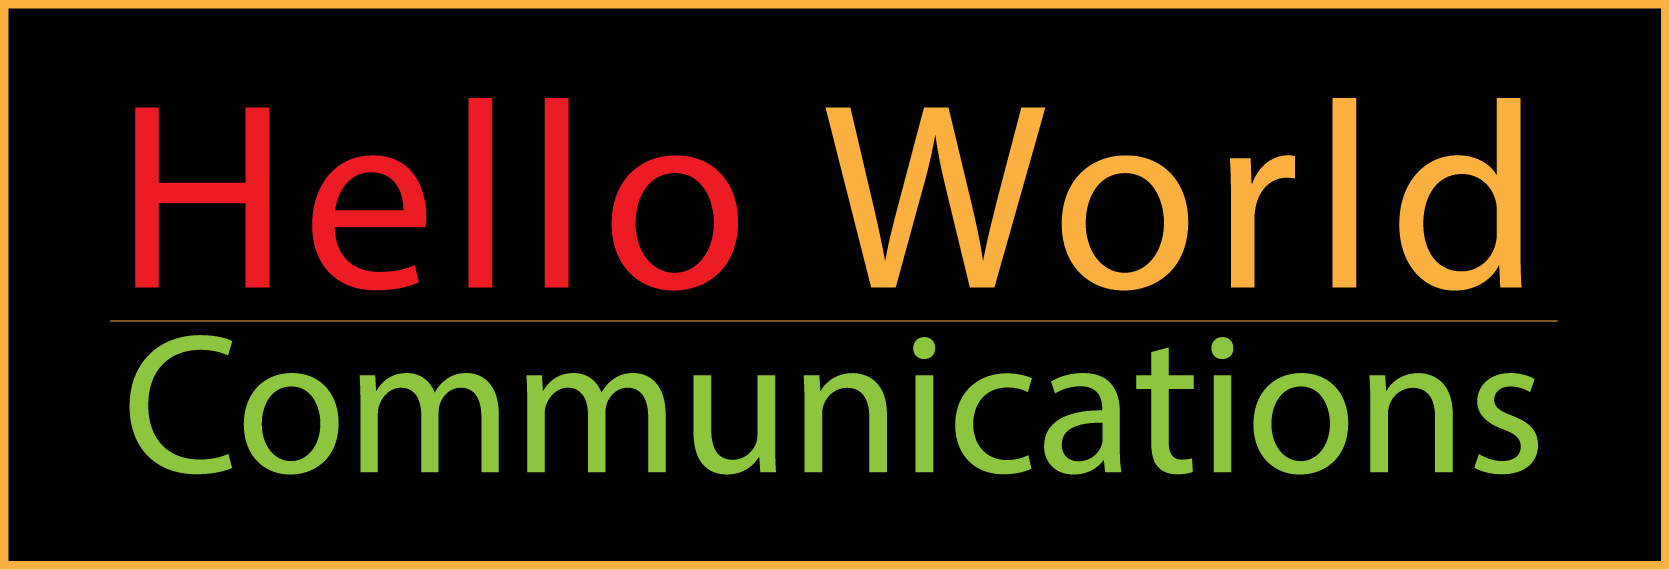 Hello World Communications >> Hello World Communications Brands Of The World Download Vector